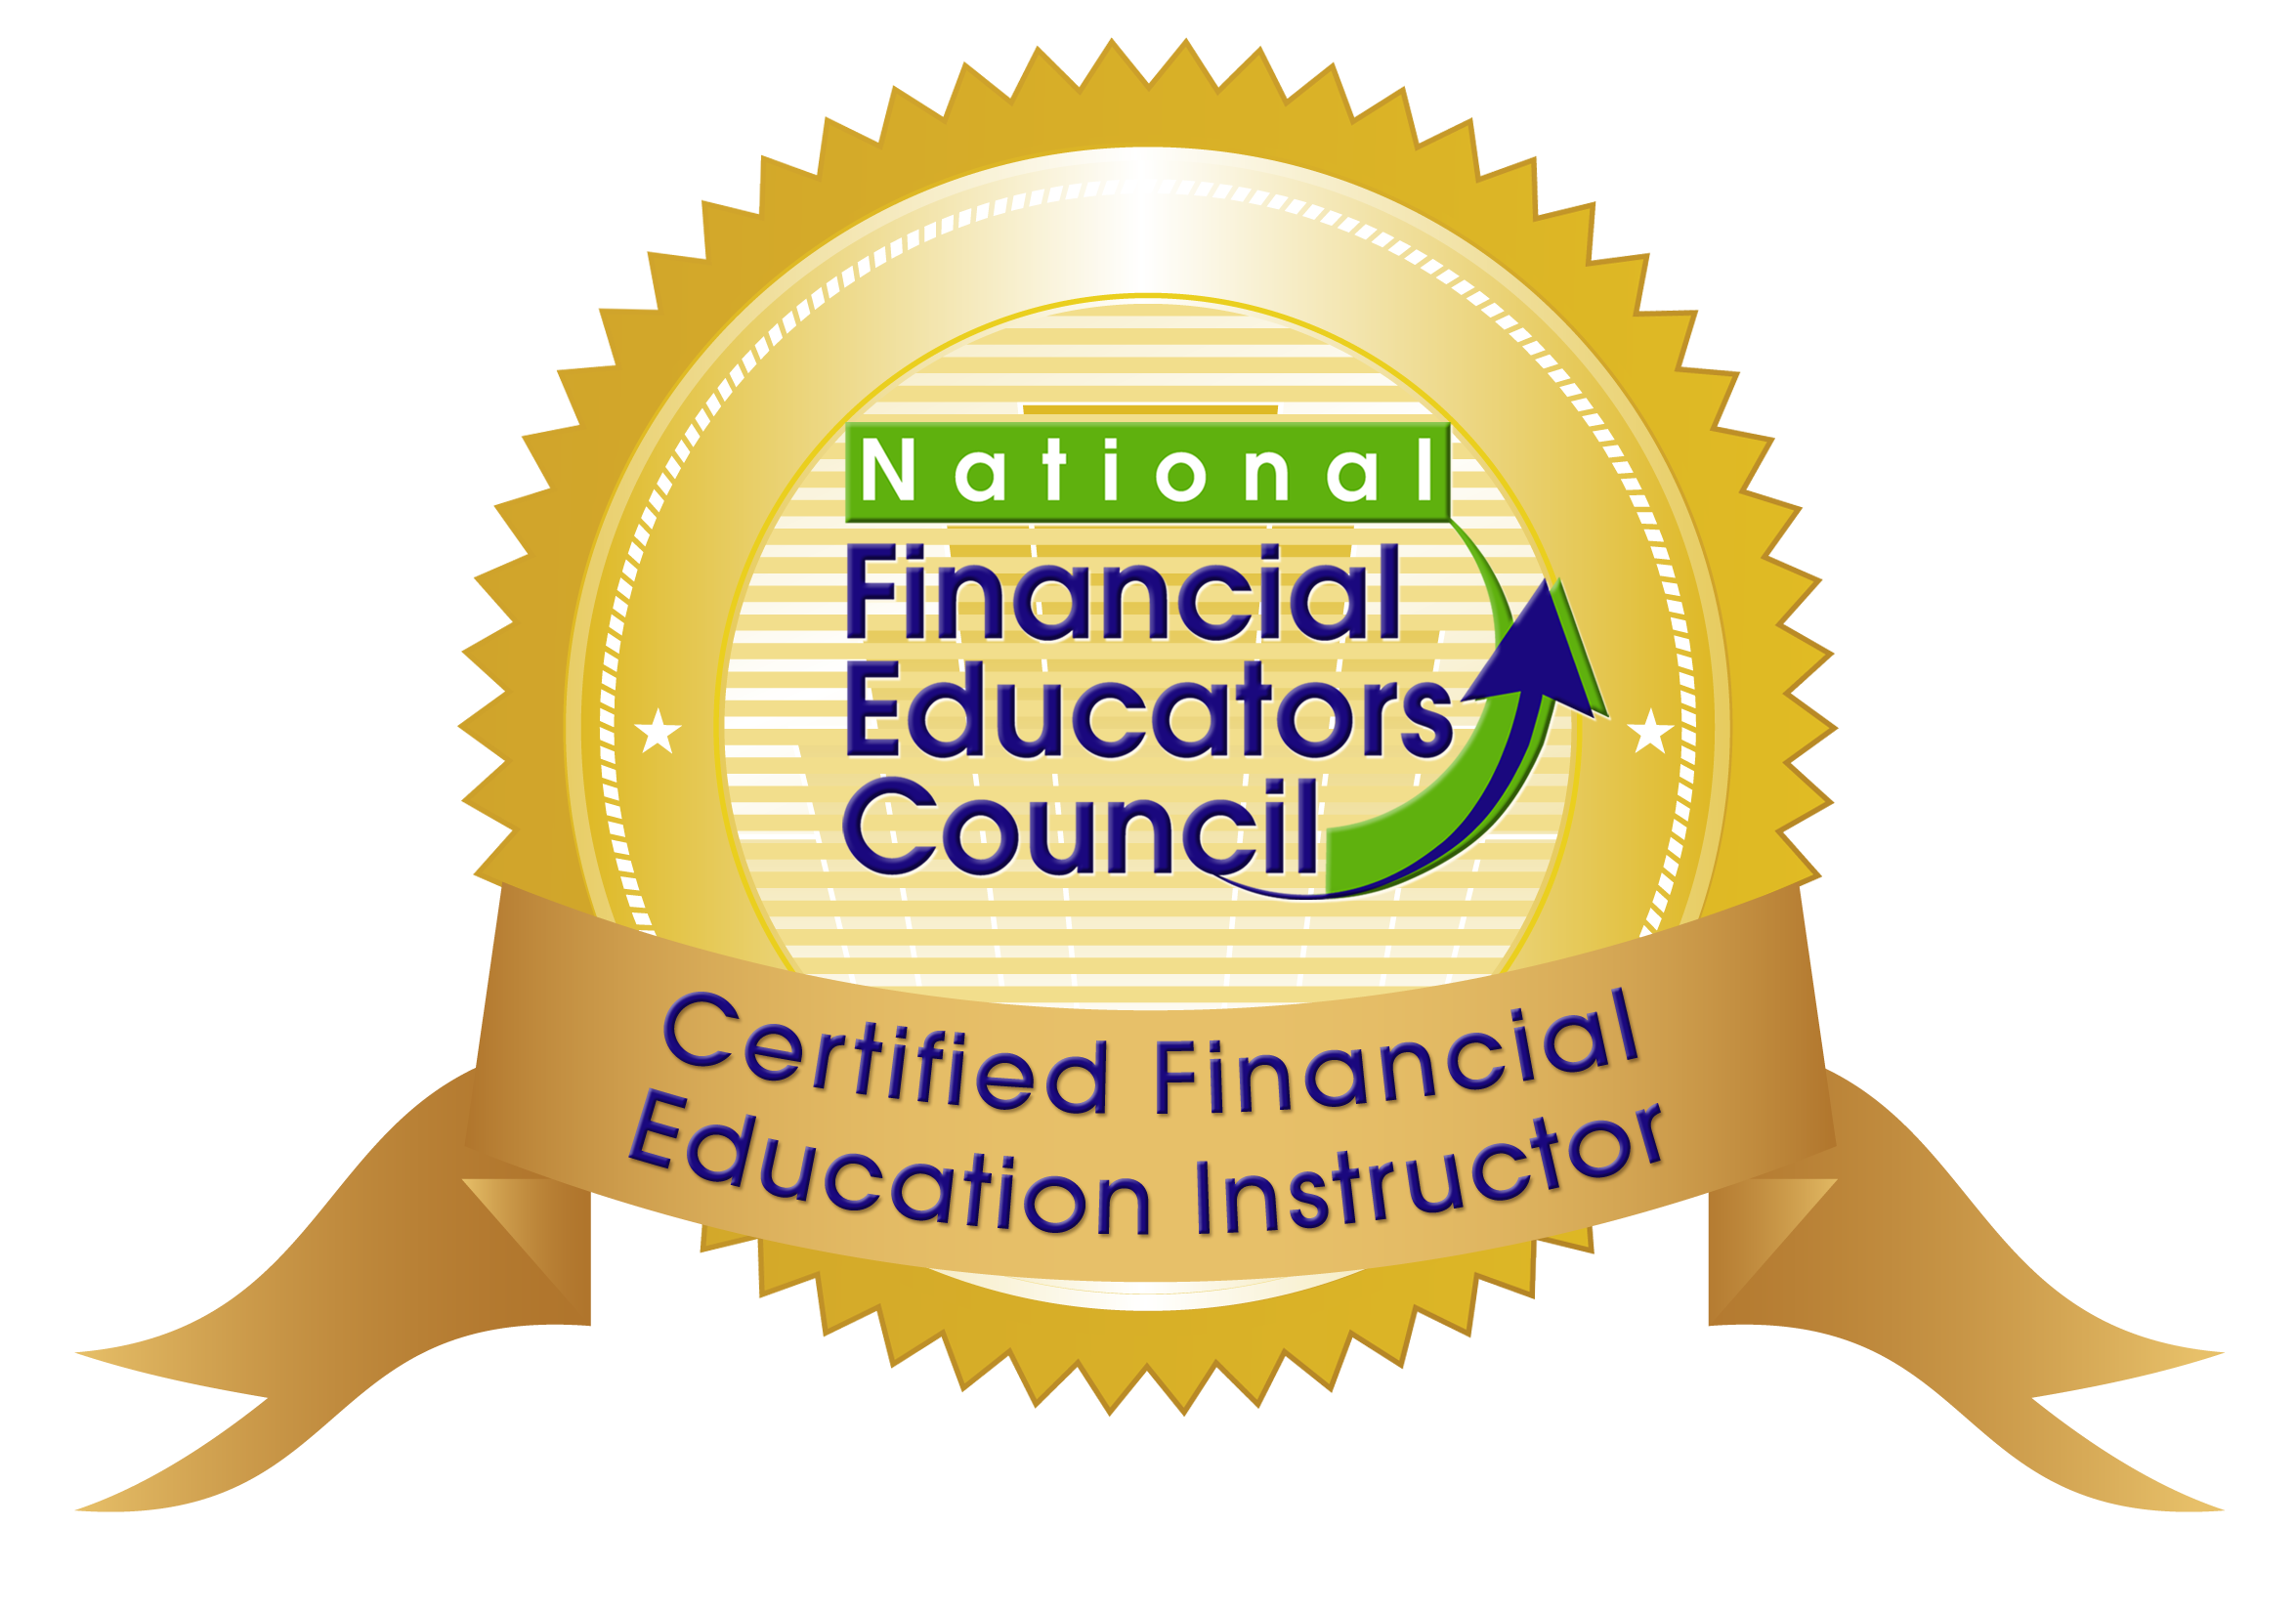 I am a Certified Financial Education Instructor.